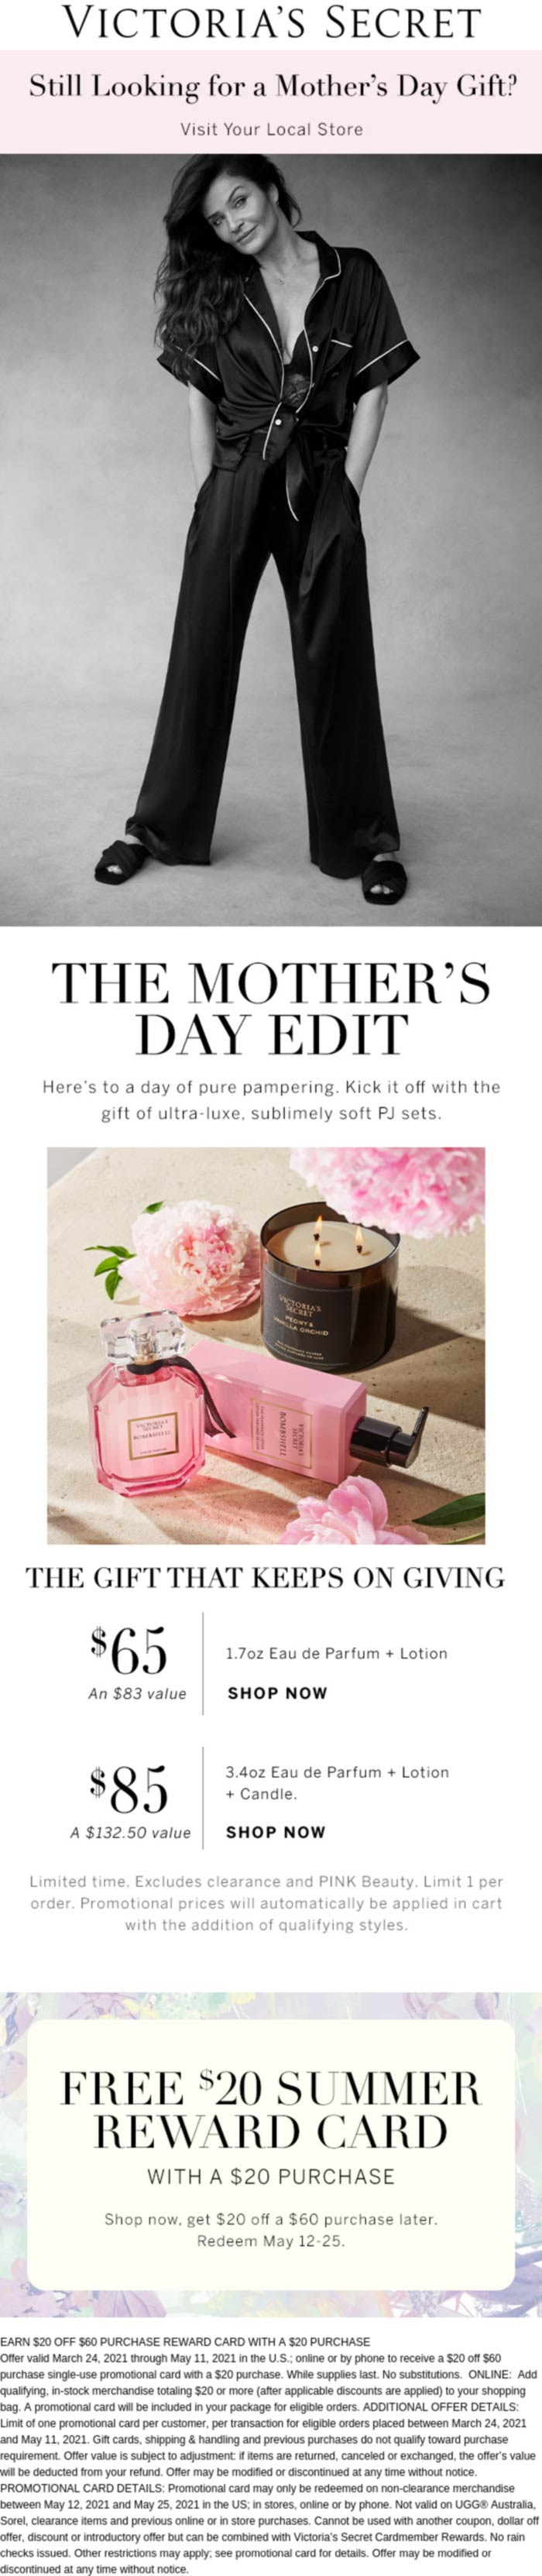 Victorias Secret stores Coupon  $20 card free with $20 spent at Victorias Secret #victoriassecret